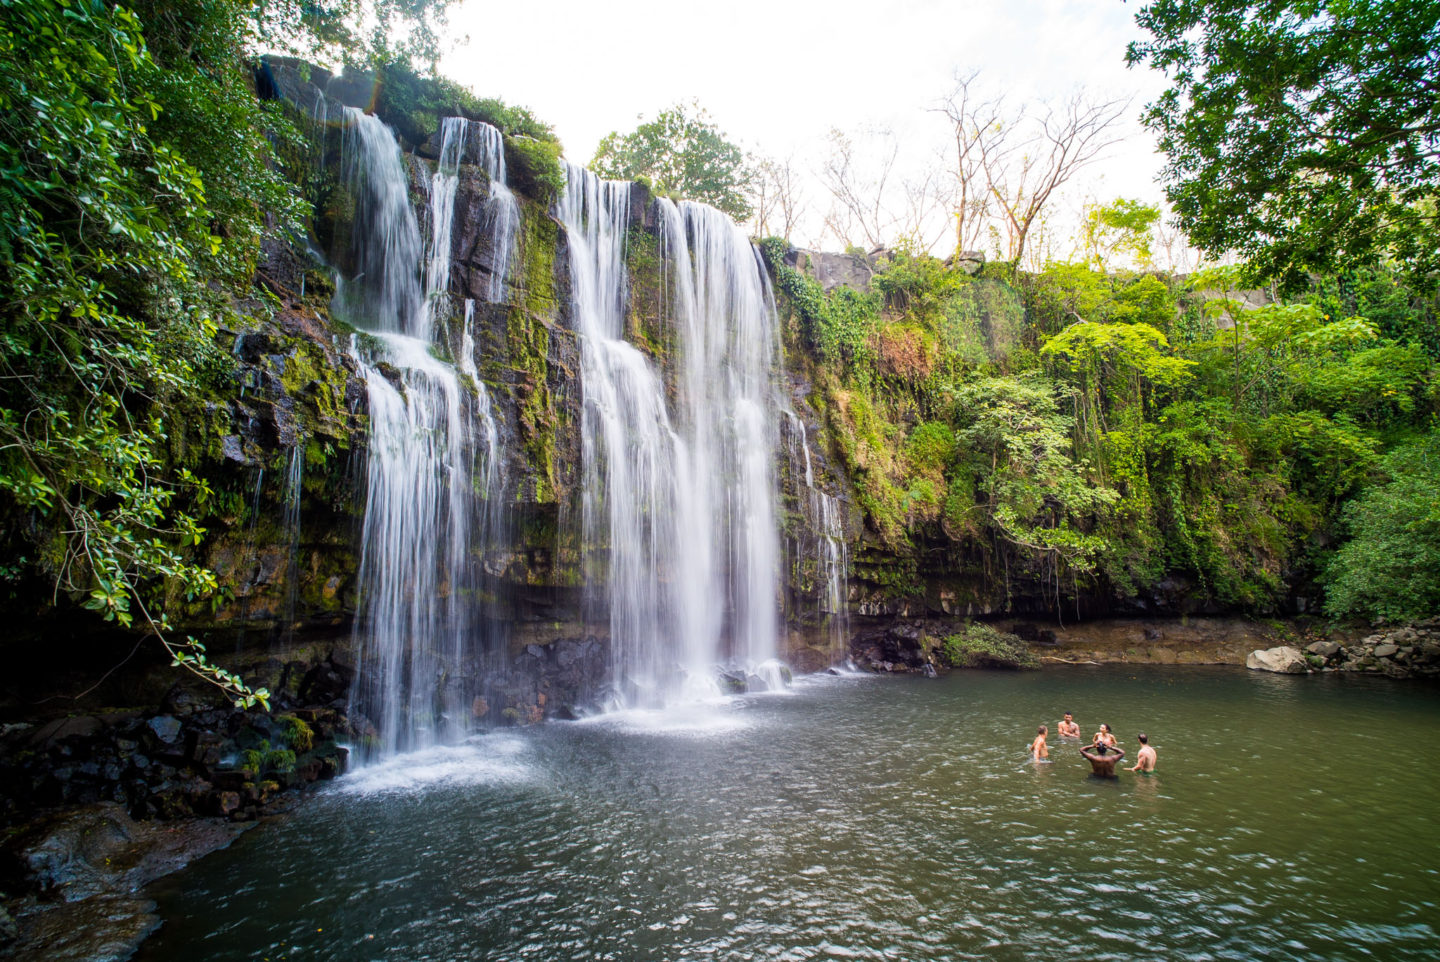 Secret Costa Rica waterfall near Liberia, not to be missed!